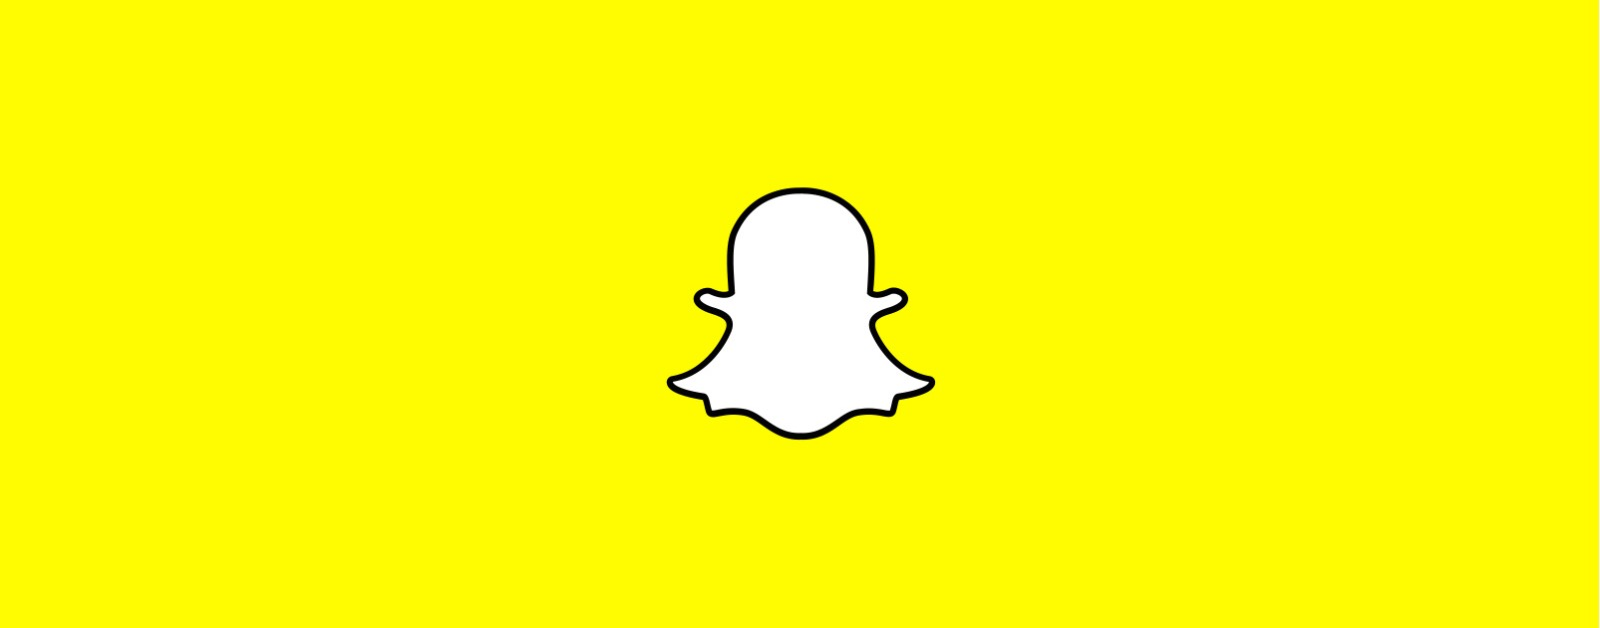 Image of Snapchat logo. New Snapchat features include Multi-Snap and Tint Brush.